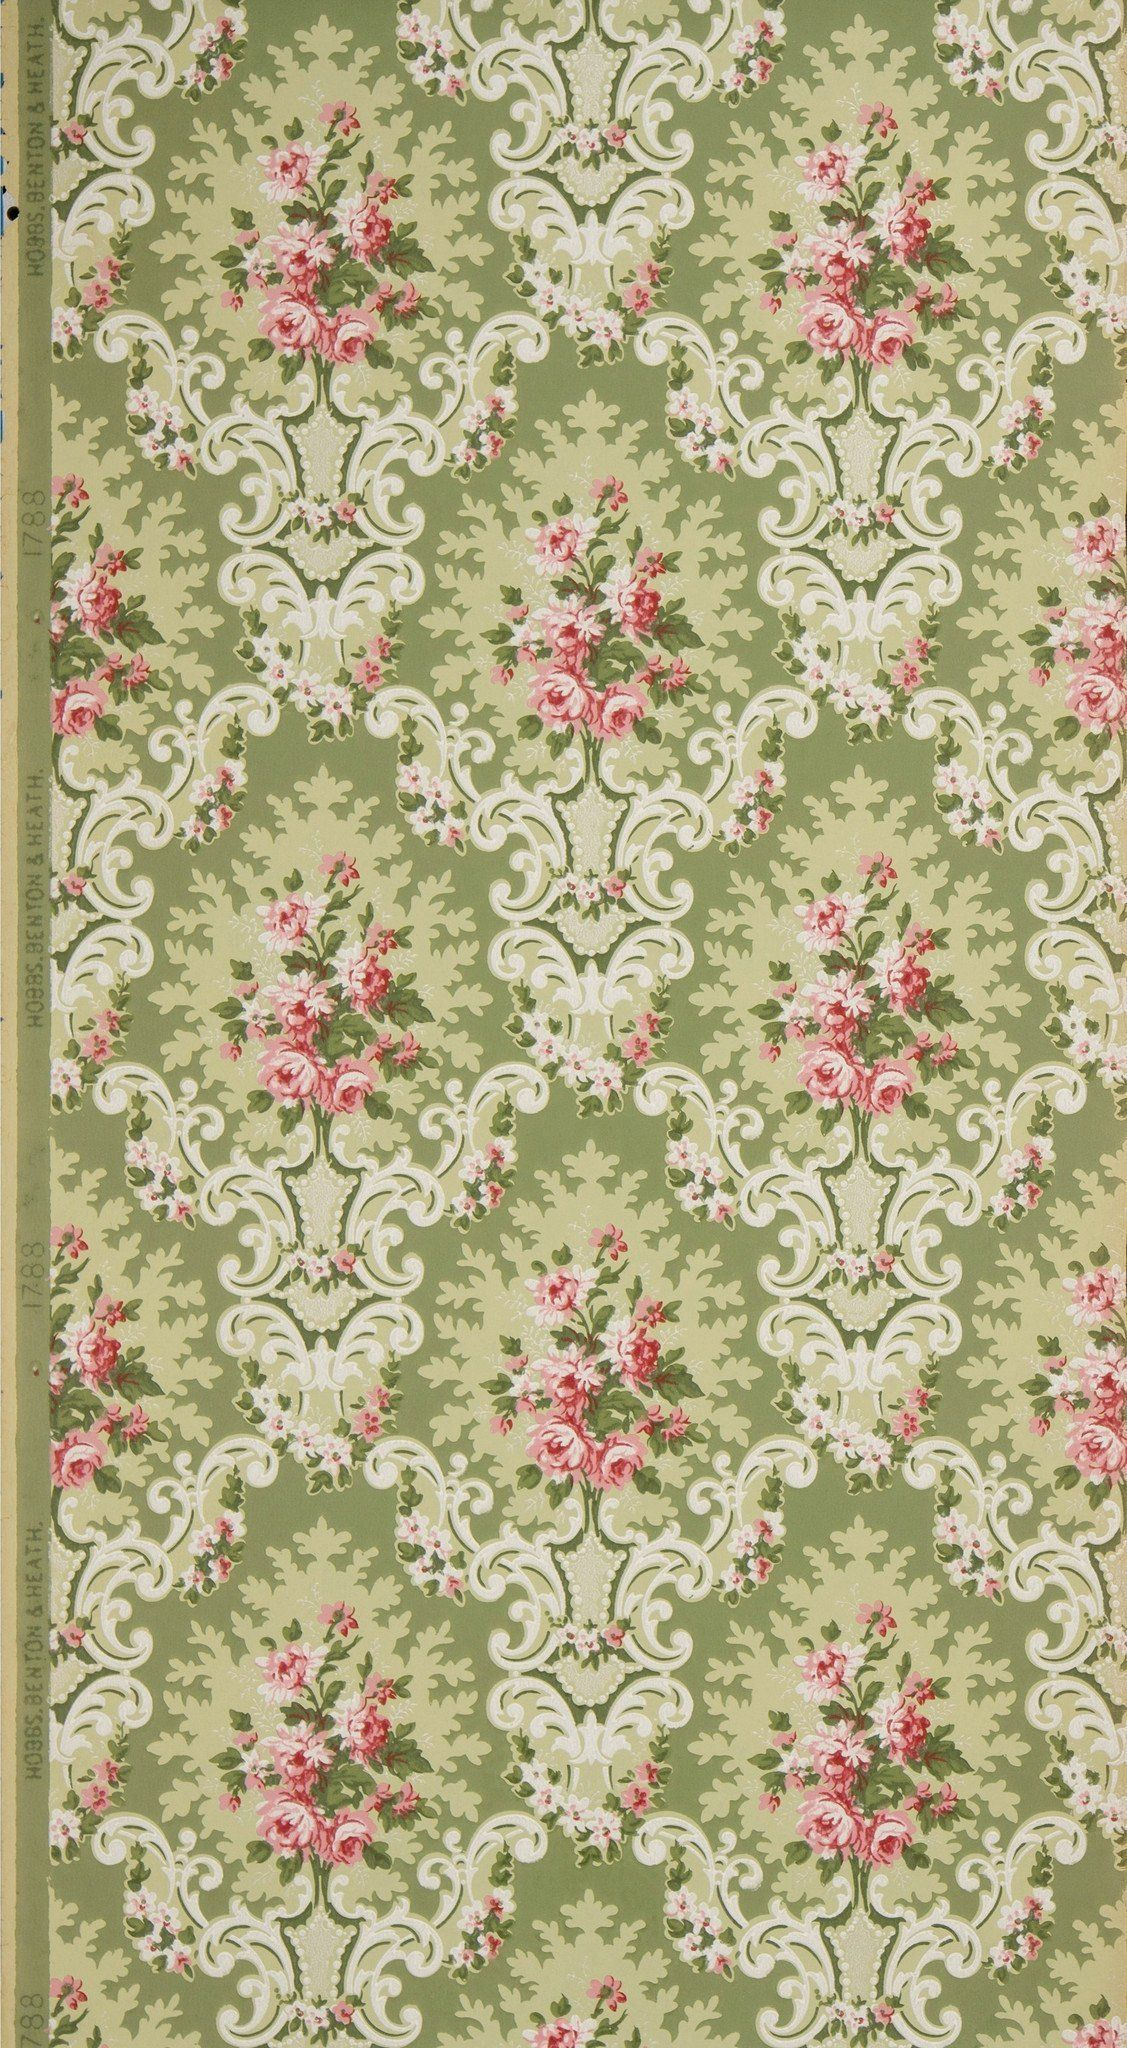 Rose Clusters In Rococo Cartouches Antique Wallpaper Remnant Antique Wallpaper Vintage Wallpaper Patterns Wallpapers Vintage